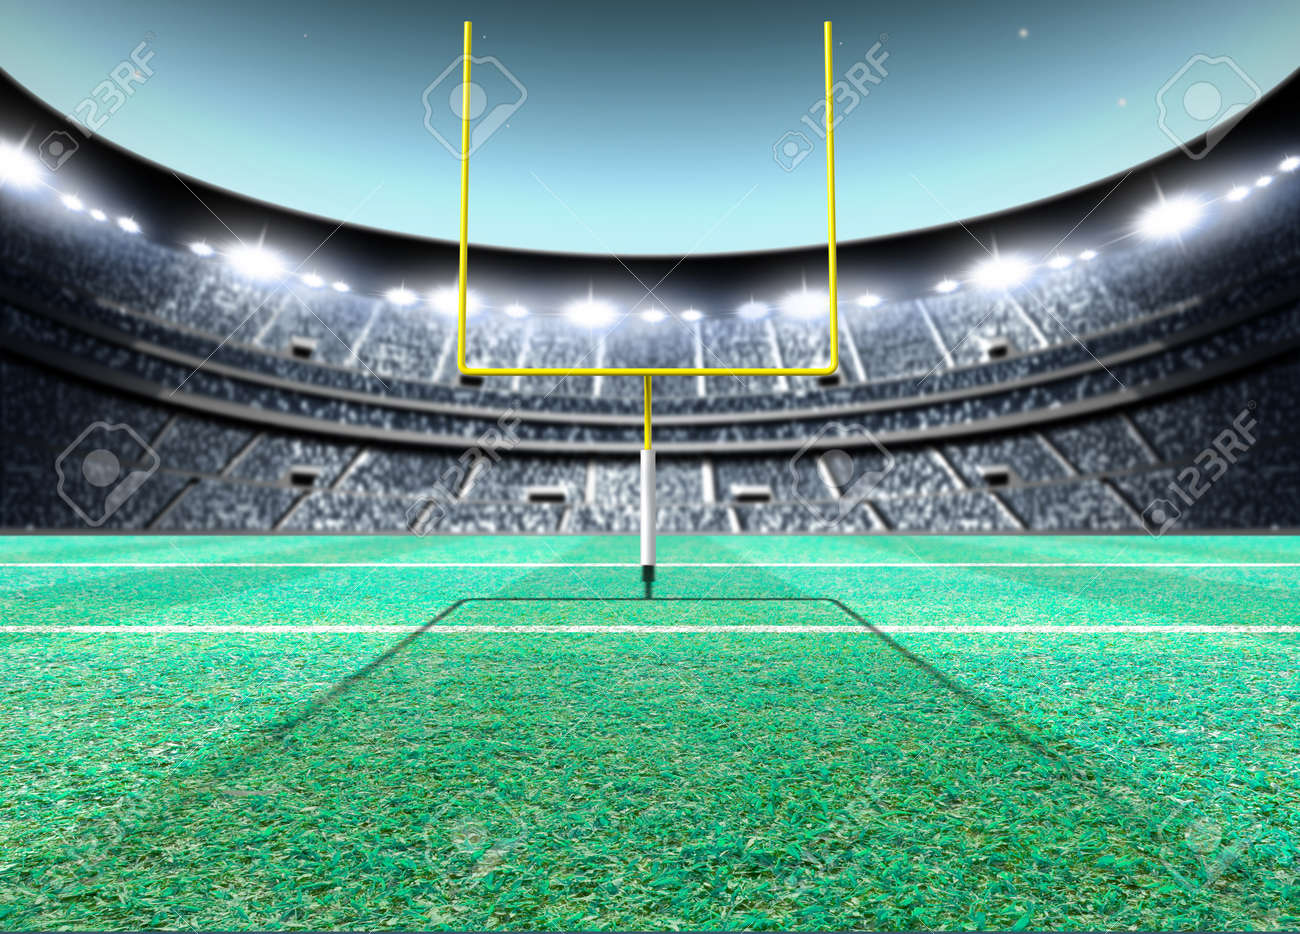 A generic seated american football stadium with yellow goal posts on a green grass pitch at night under illuminated floodlights - 3D render - 71562645